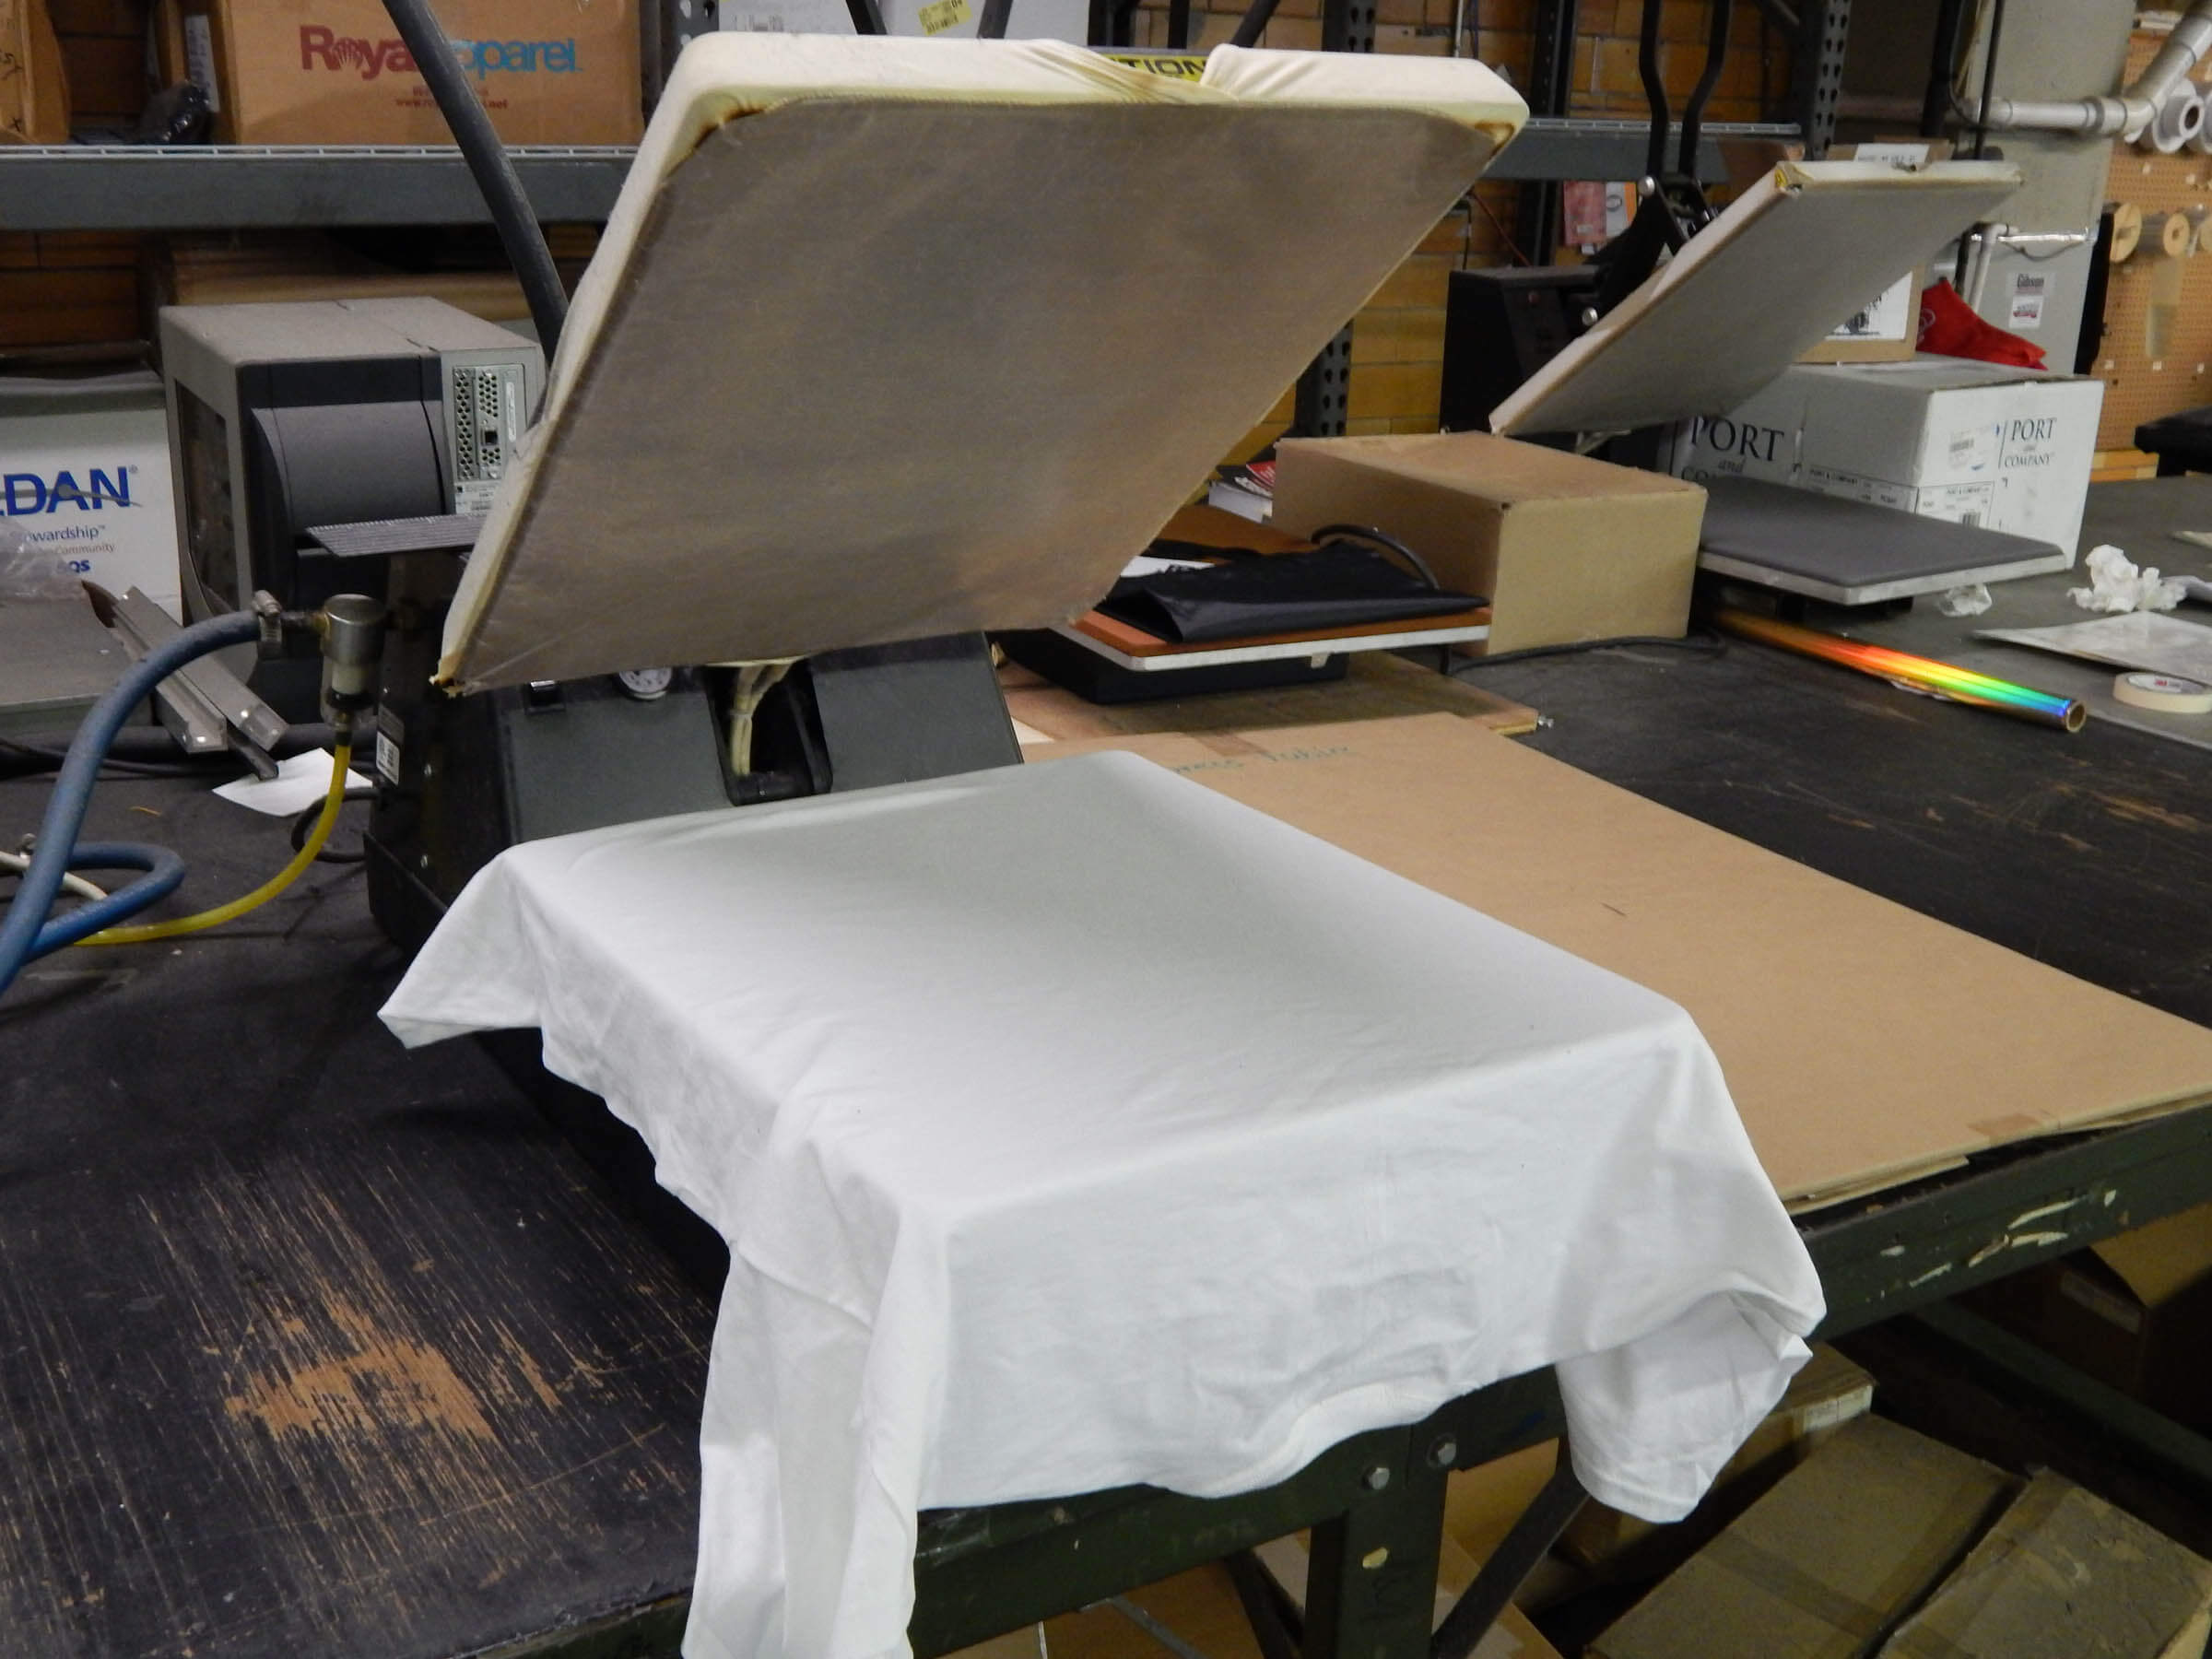 Screen Printing Materials at Prestige Graphic in Middletown, NY